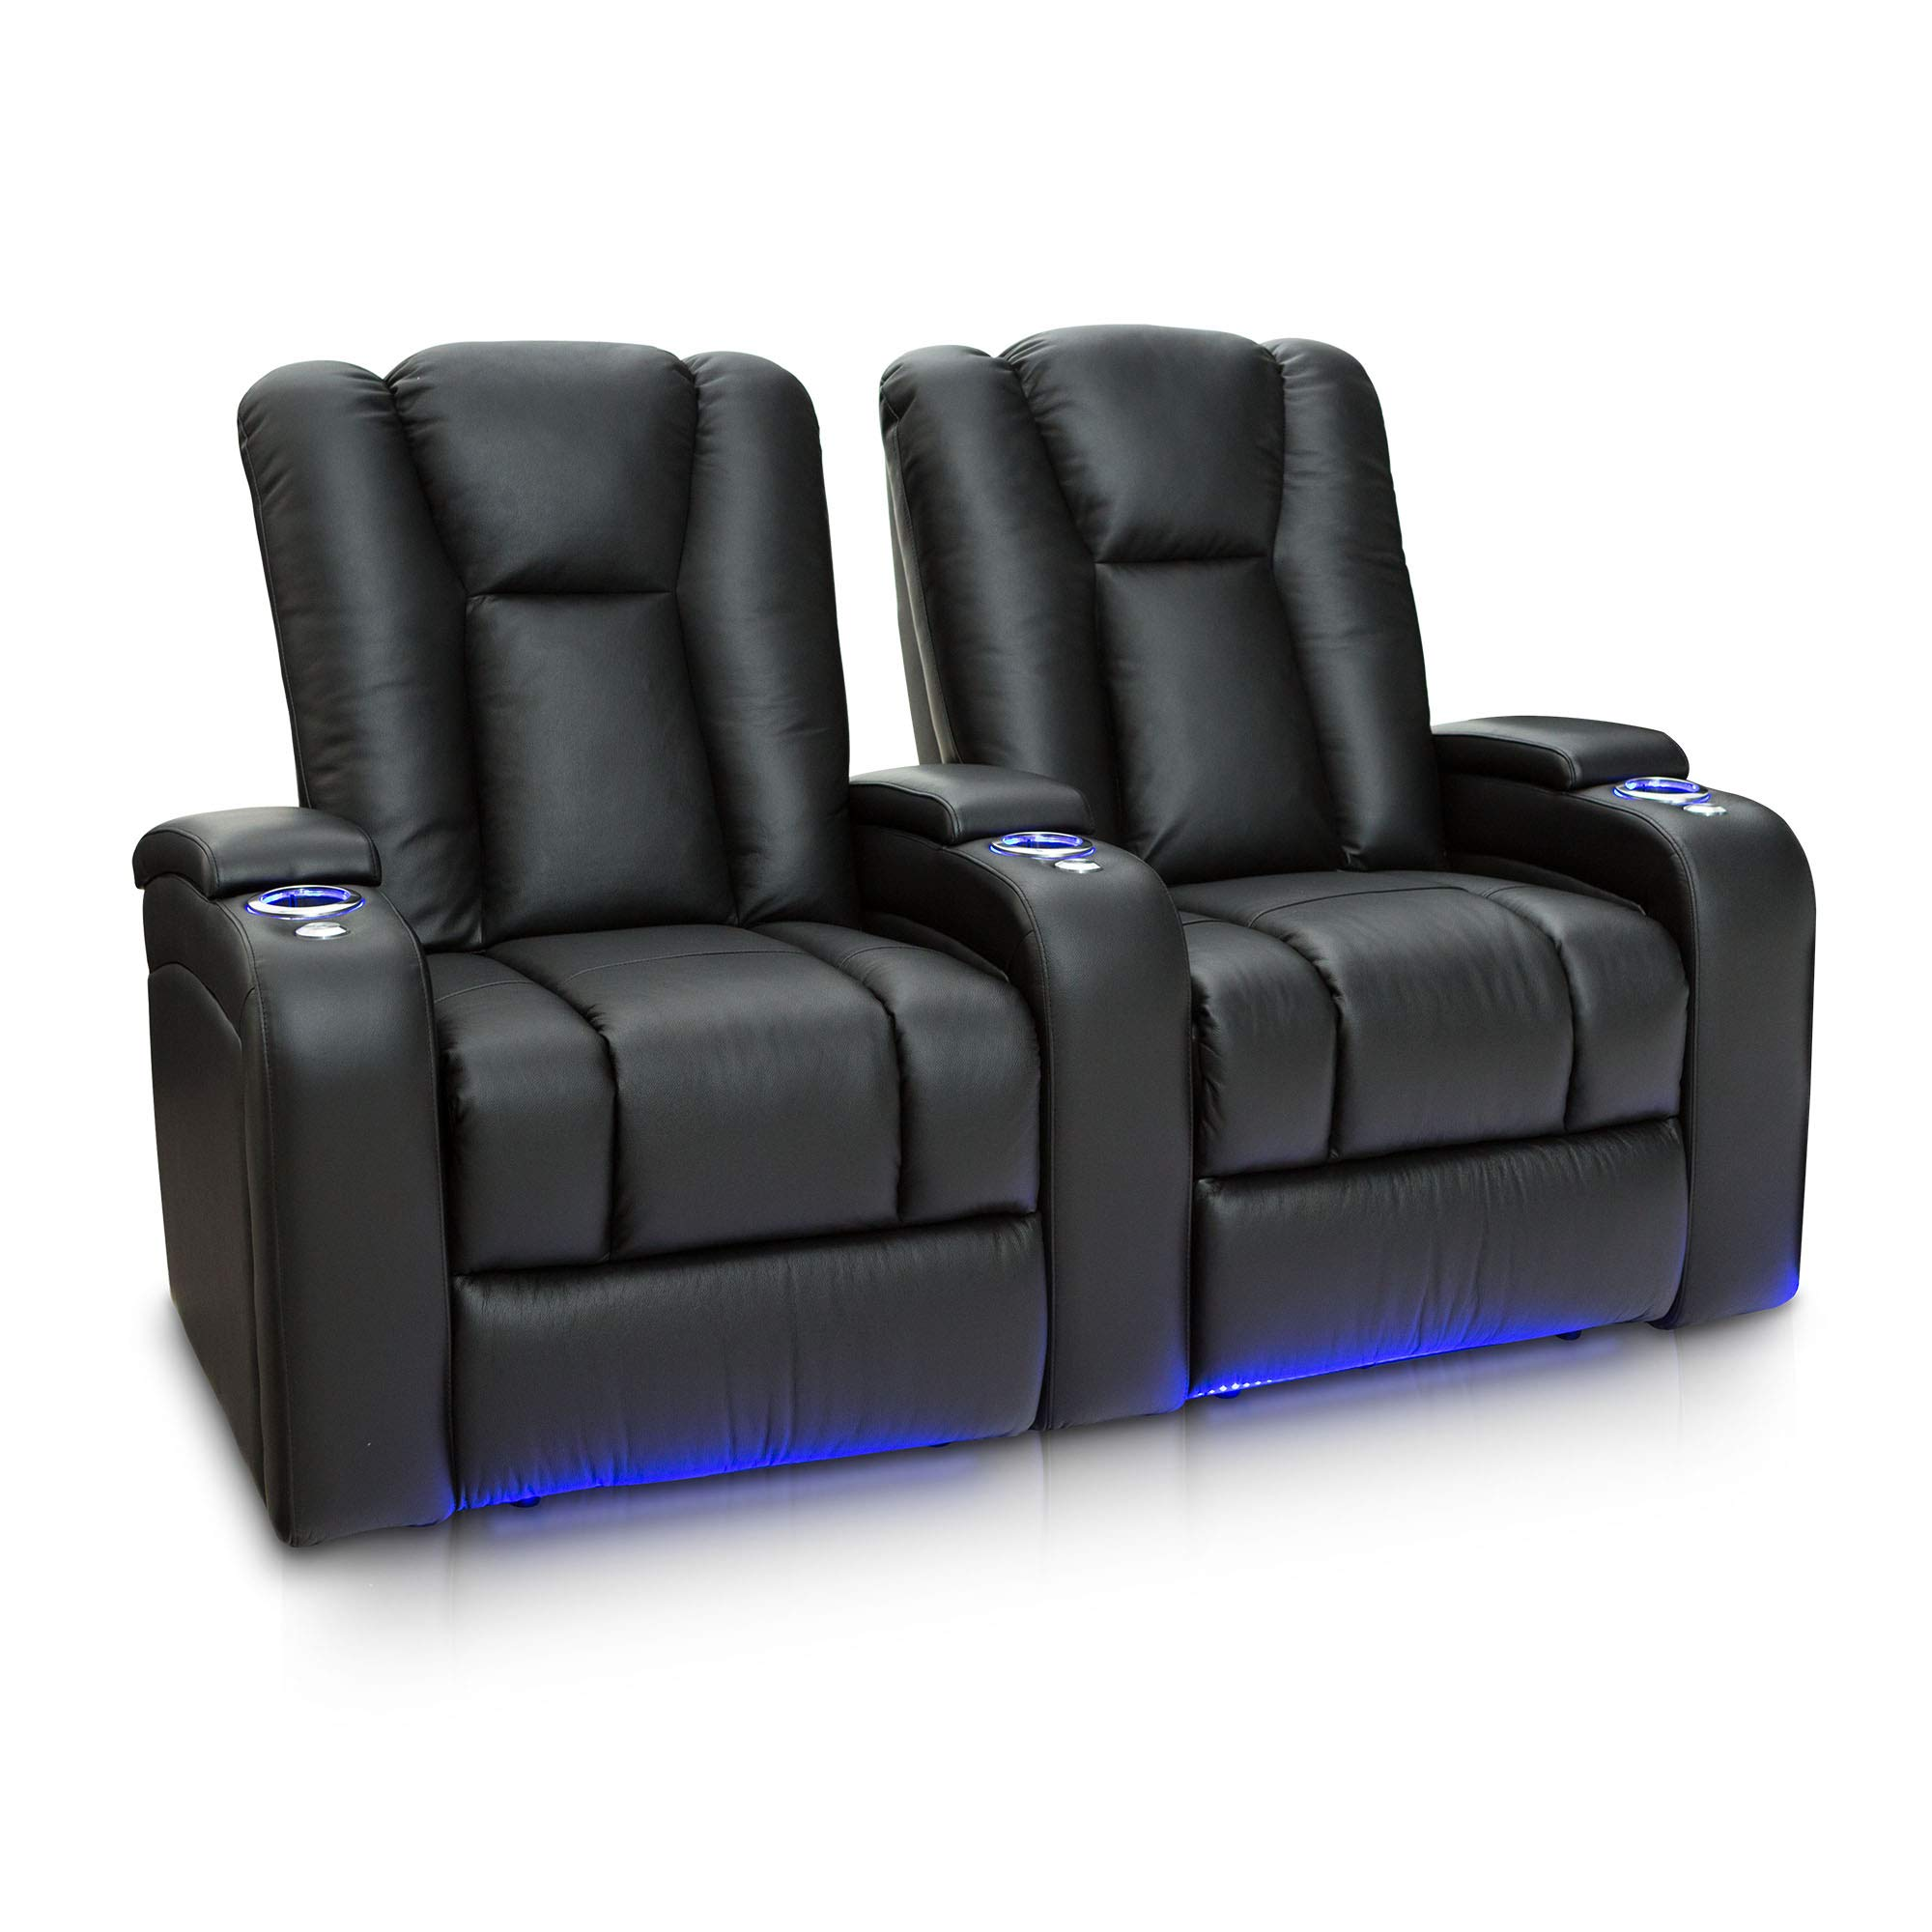 Seatcraft Serenity Leather Home Theater Seating Power Recline with in-Arm Storage, Lighted Cup Holders, and Ambient Base (Row of 2, Black) by Seatcraft